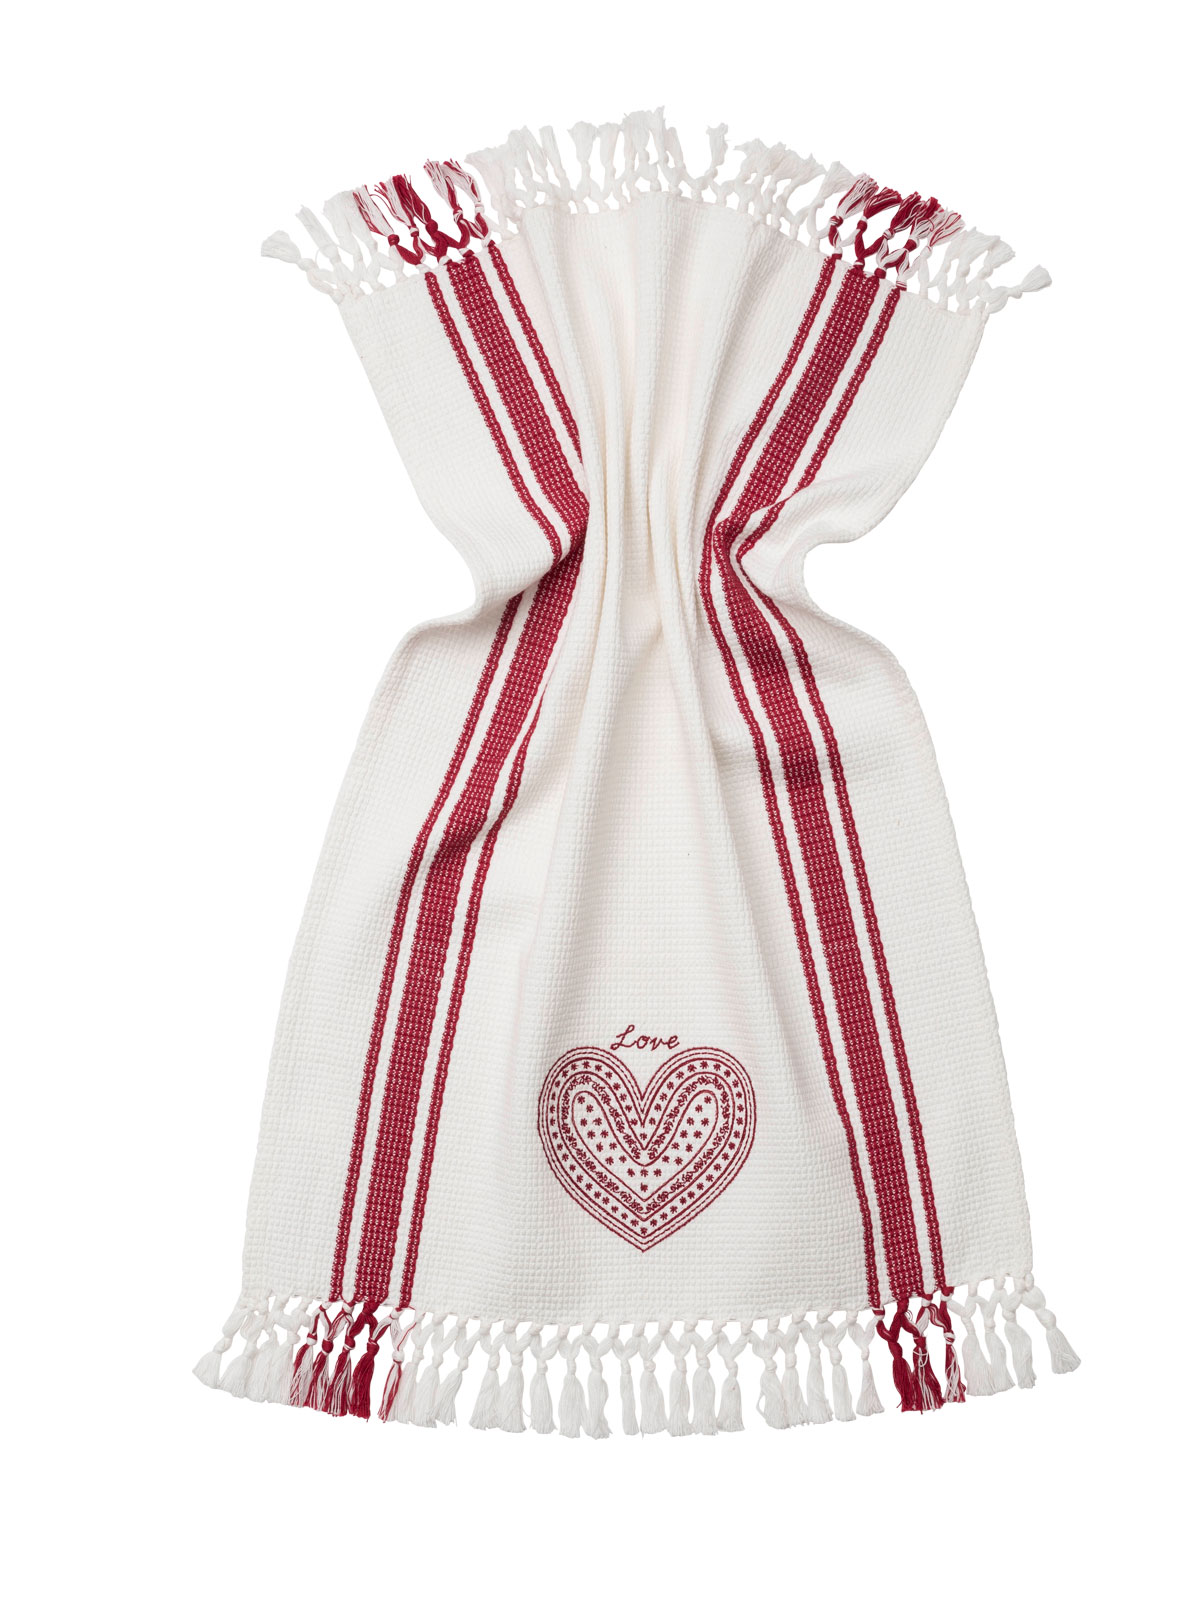 Love Embroidered Tea Towel White Item Ttelov1 White Choose Size One